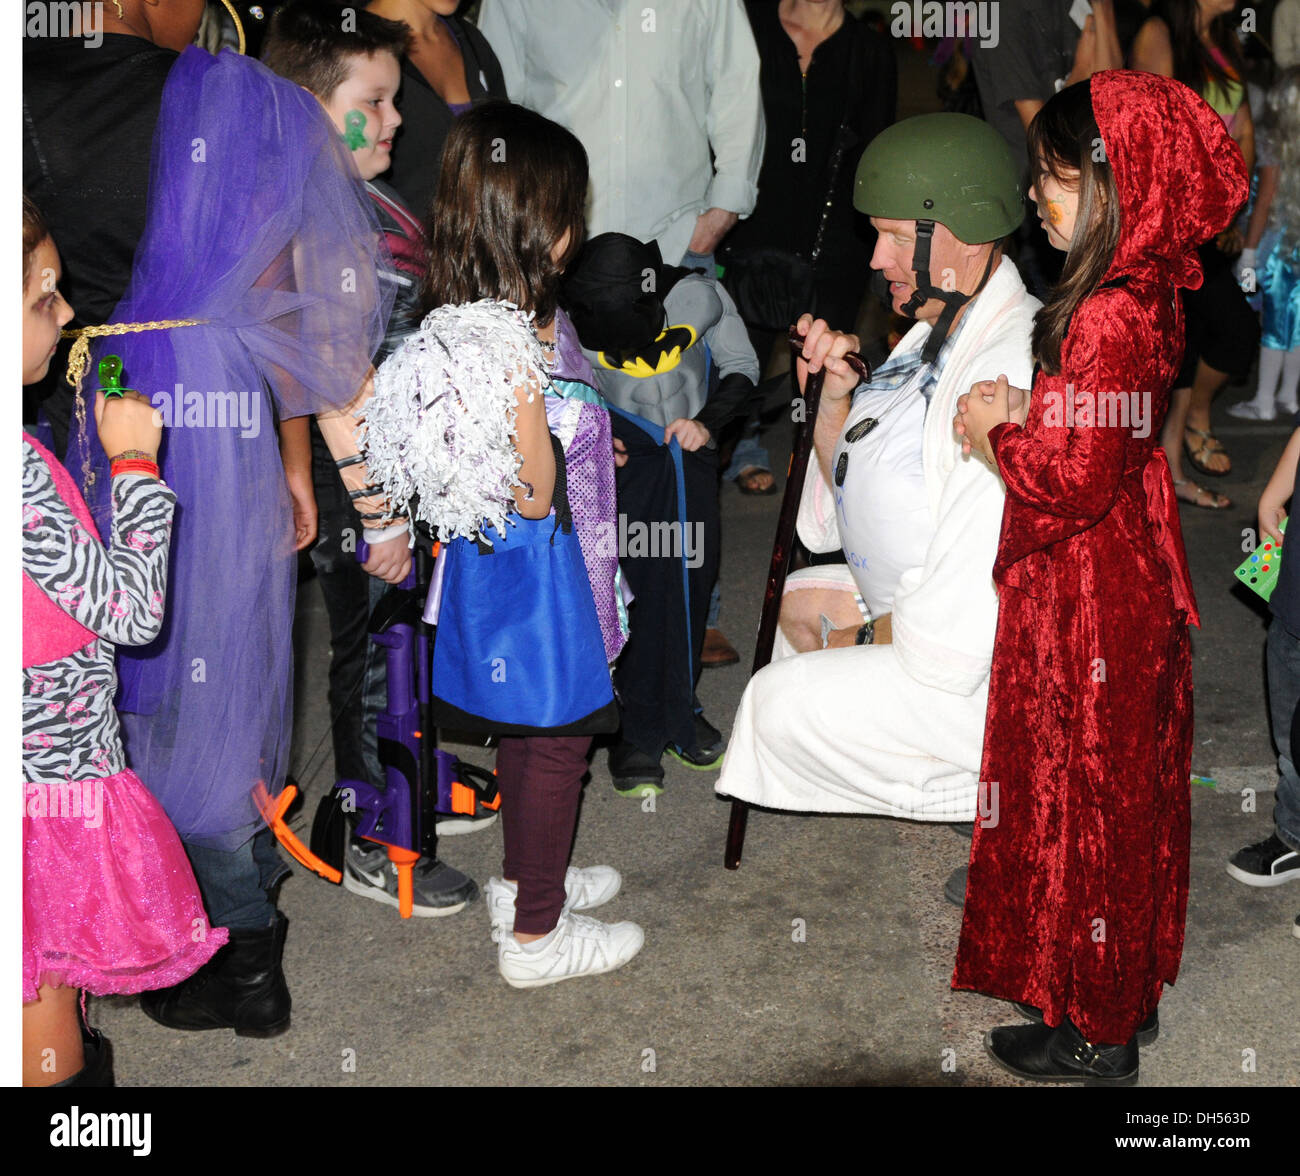 Col. Brian Gibson, the commander of the 69th Air Defense Artillery Brigade, judges the costume contest for children ages 6-12 at the Fall Festival here, Oct. 26. - Stock Image